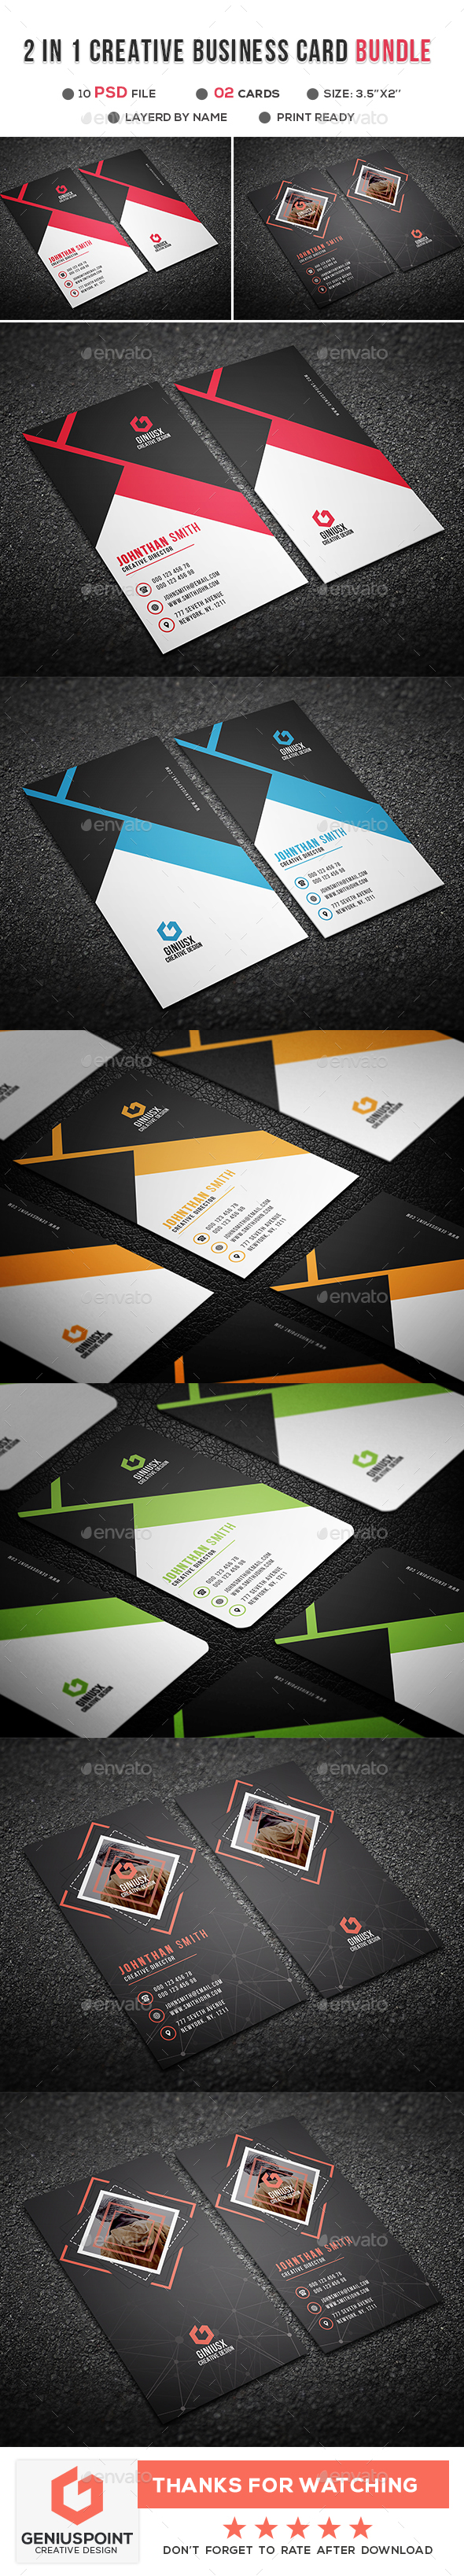 GraphicRiver 2 in 1 Creative Business Card Bundle 21094244